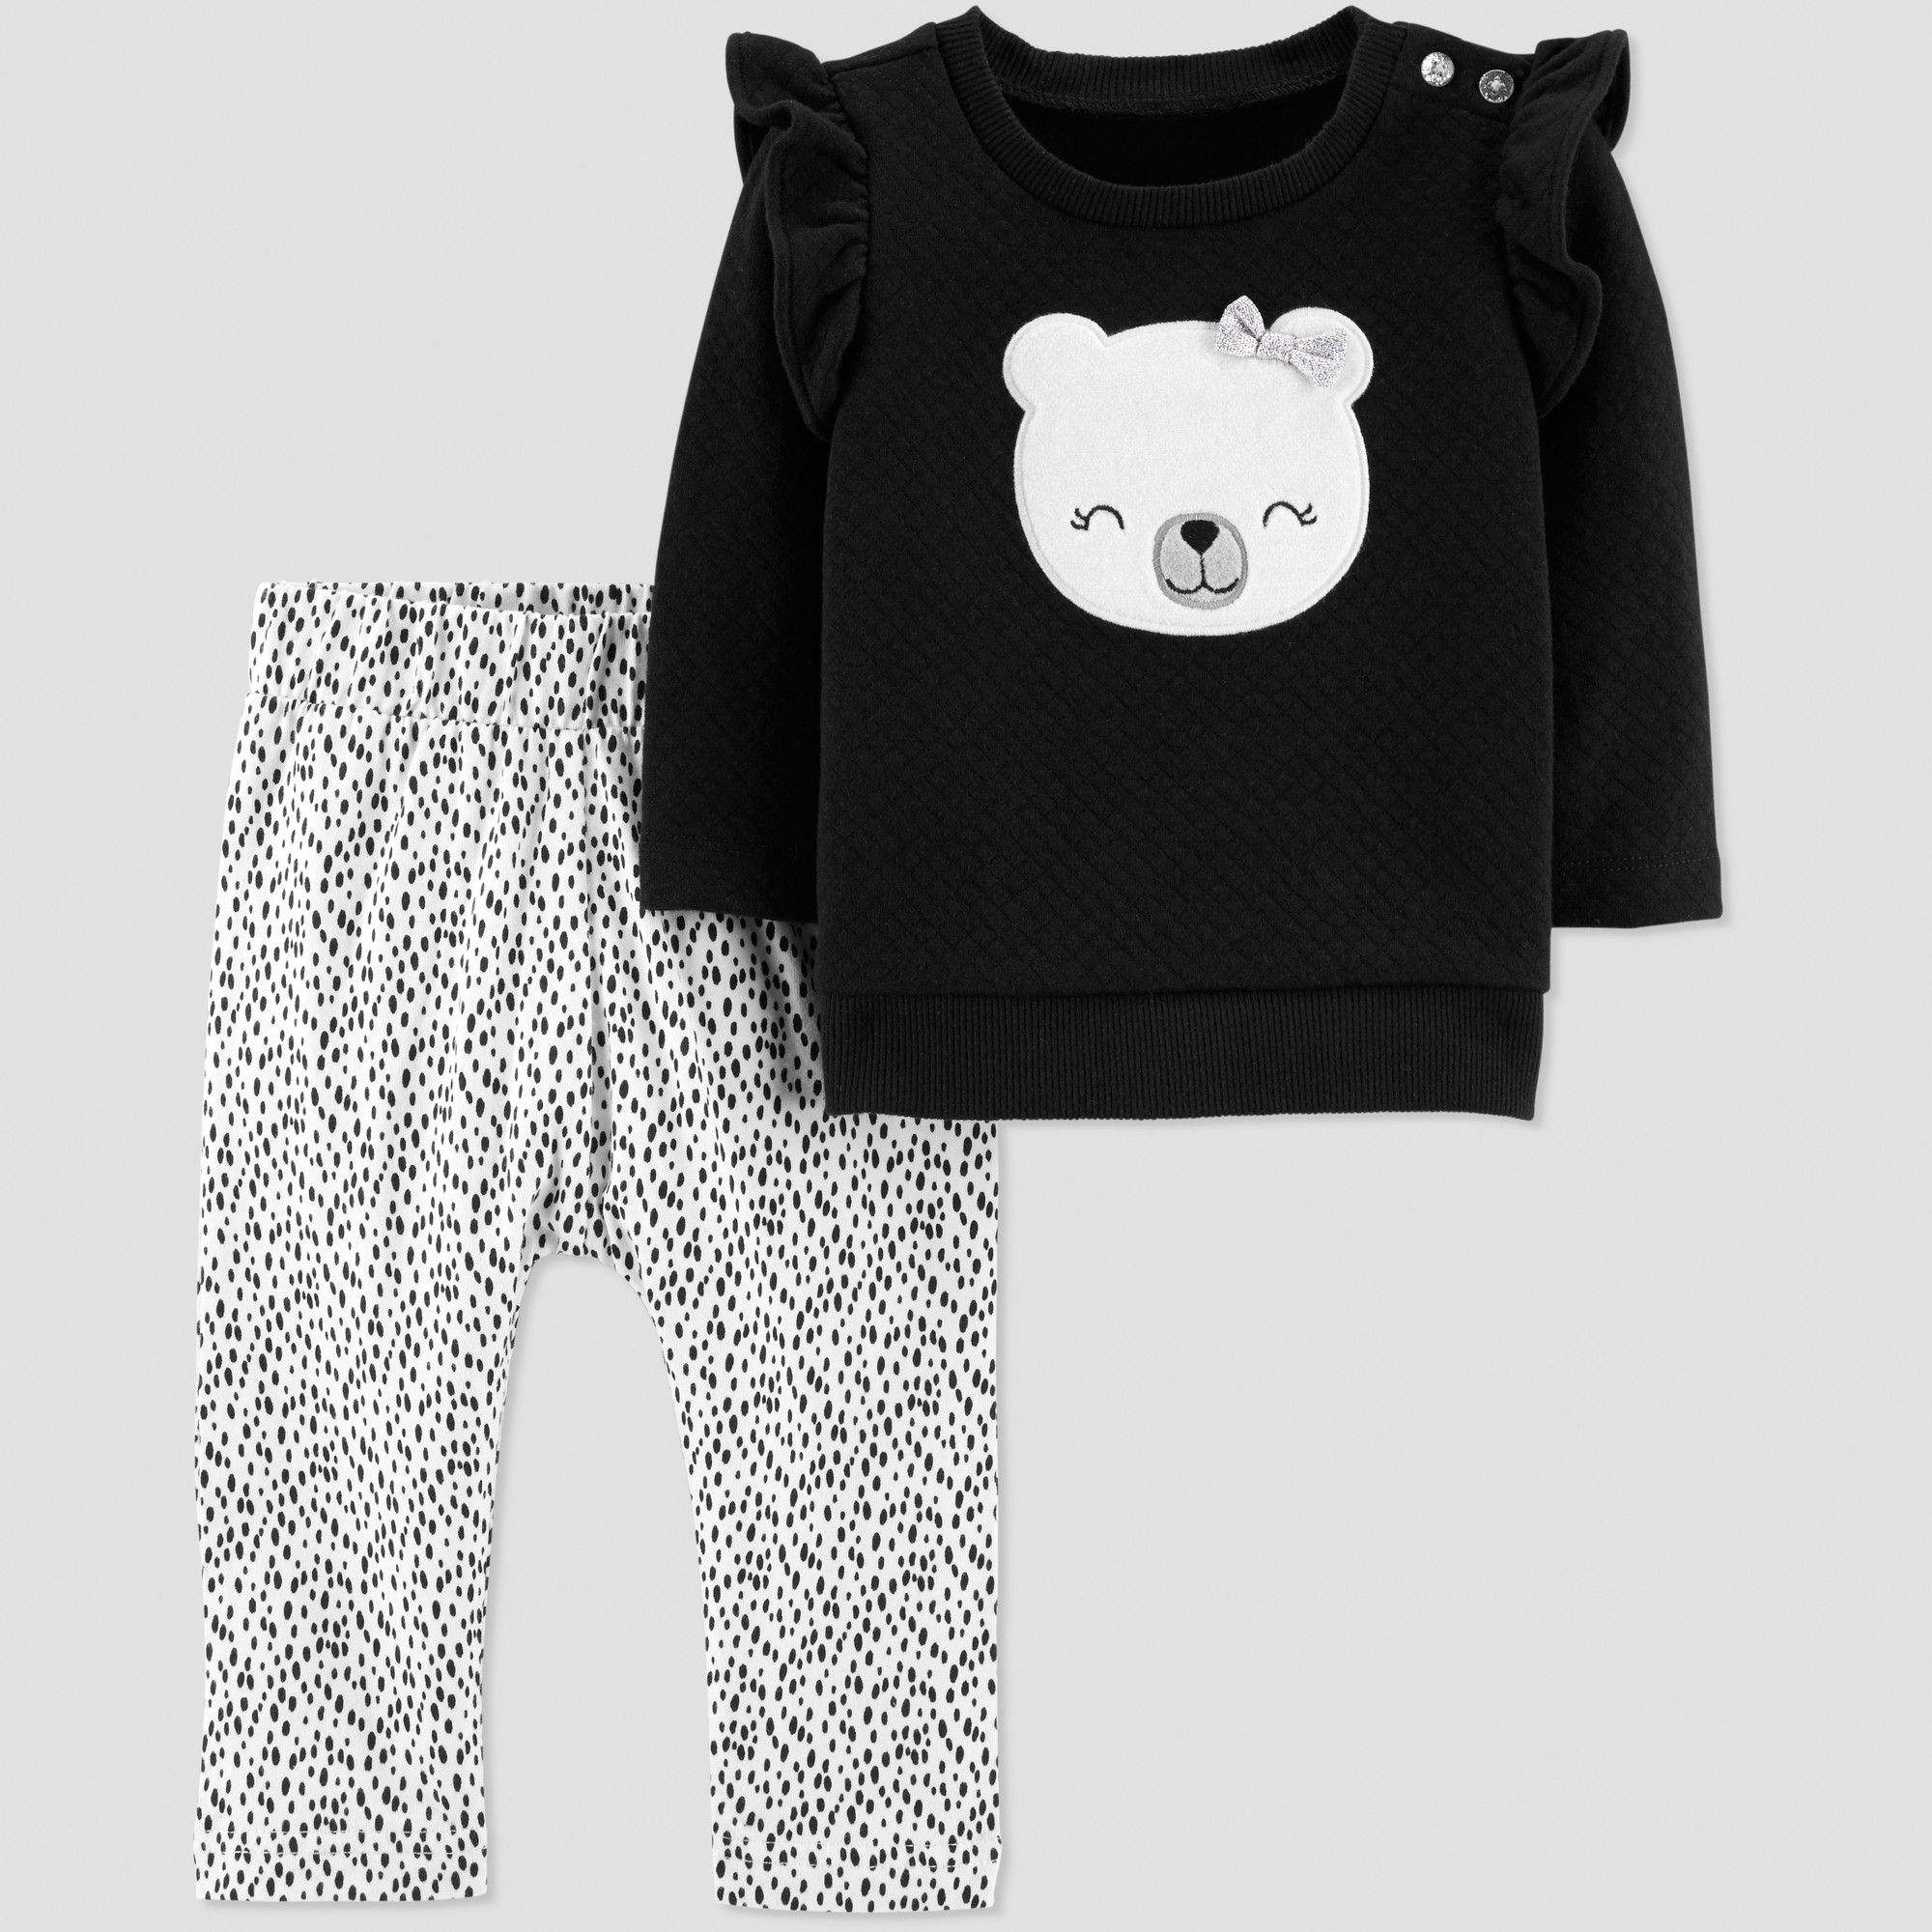 9569f36b9c8 Baby Girls  2pc Quilted Ruffle Panda Set - Just One You made by carter s  Black White 6M